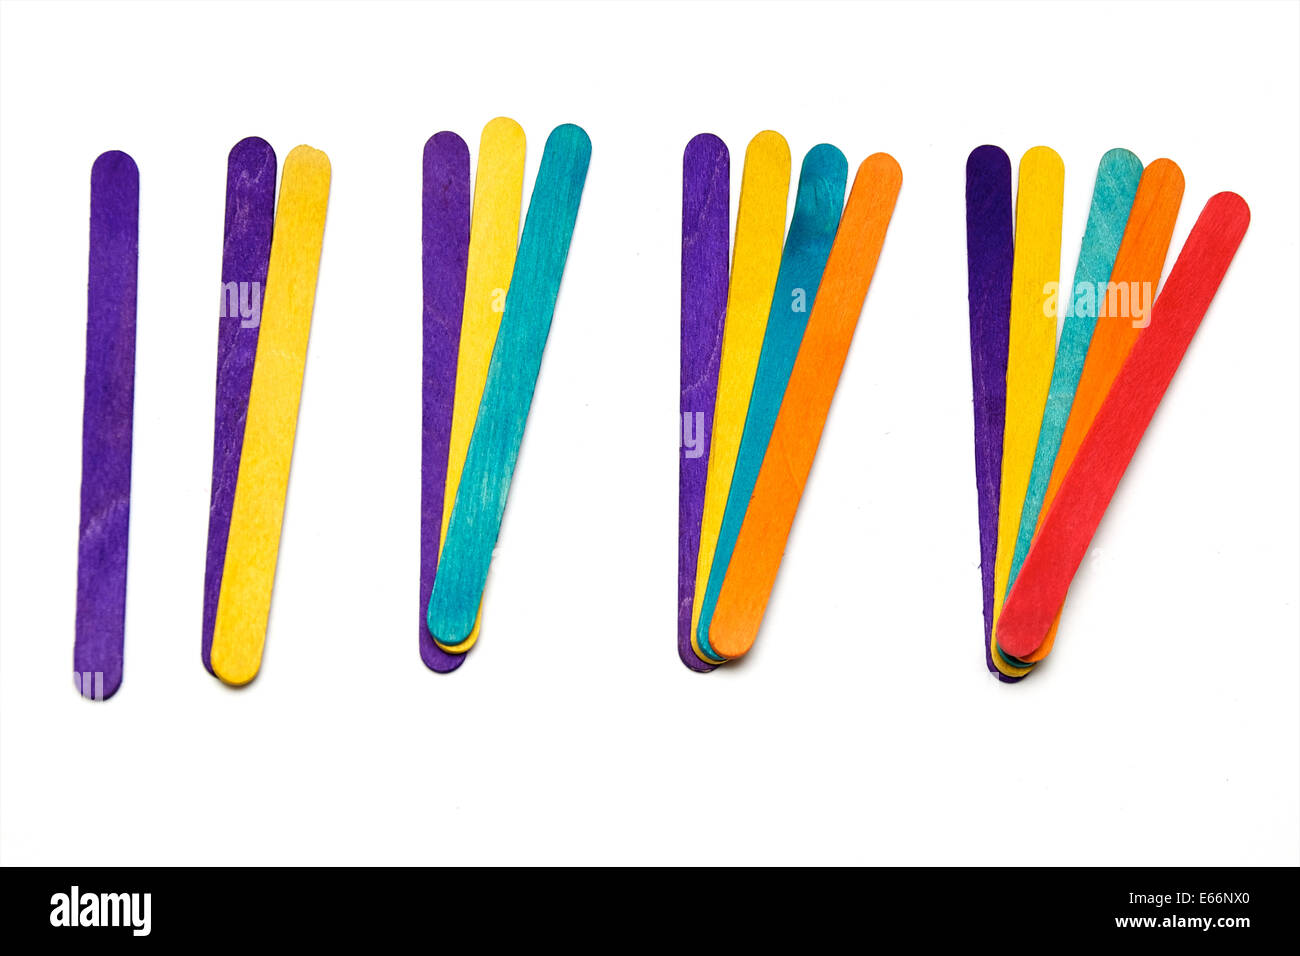 Various colored popsicle craft sticks are in groups each color adds another number over white. - Stock Image